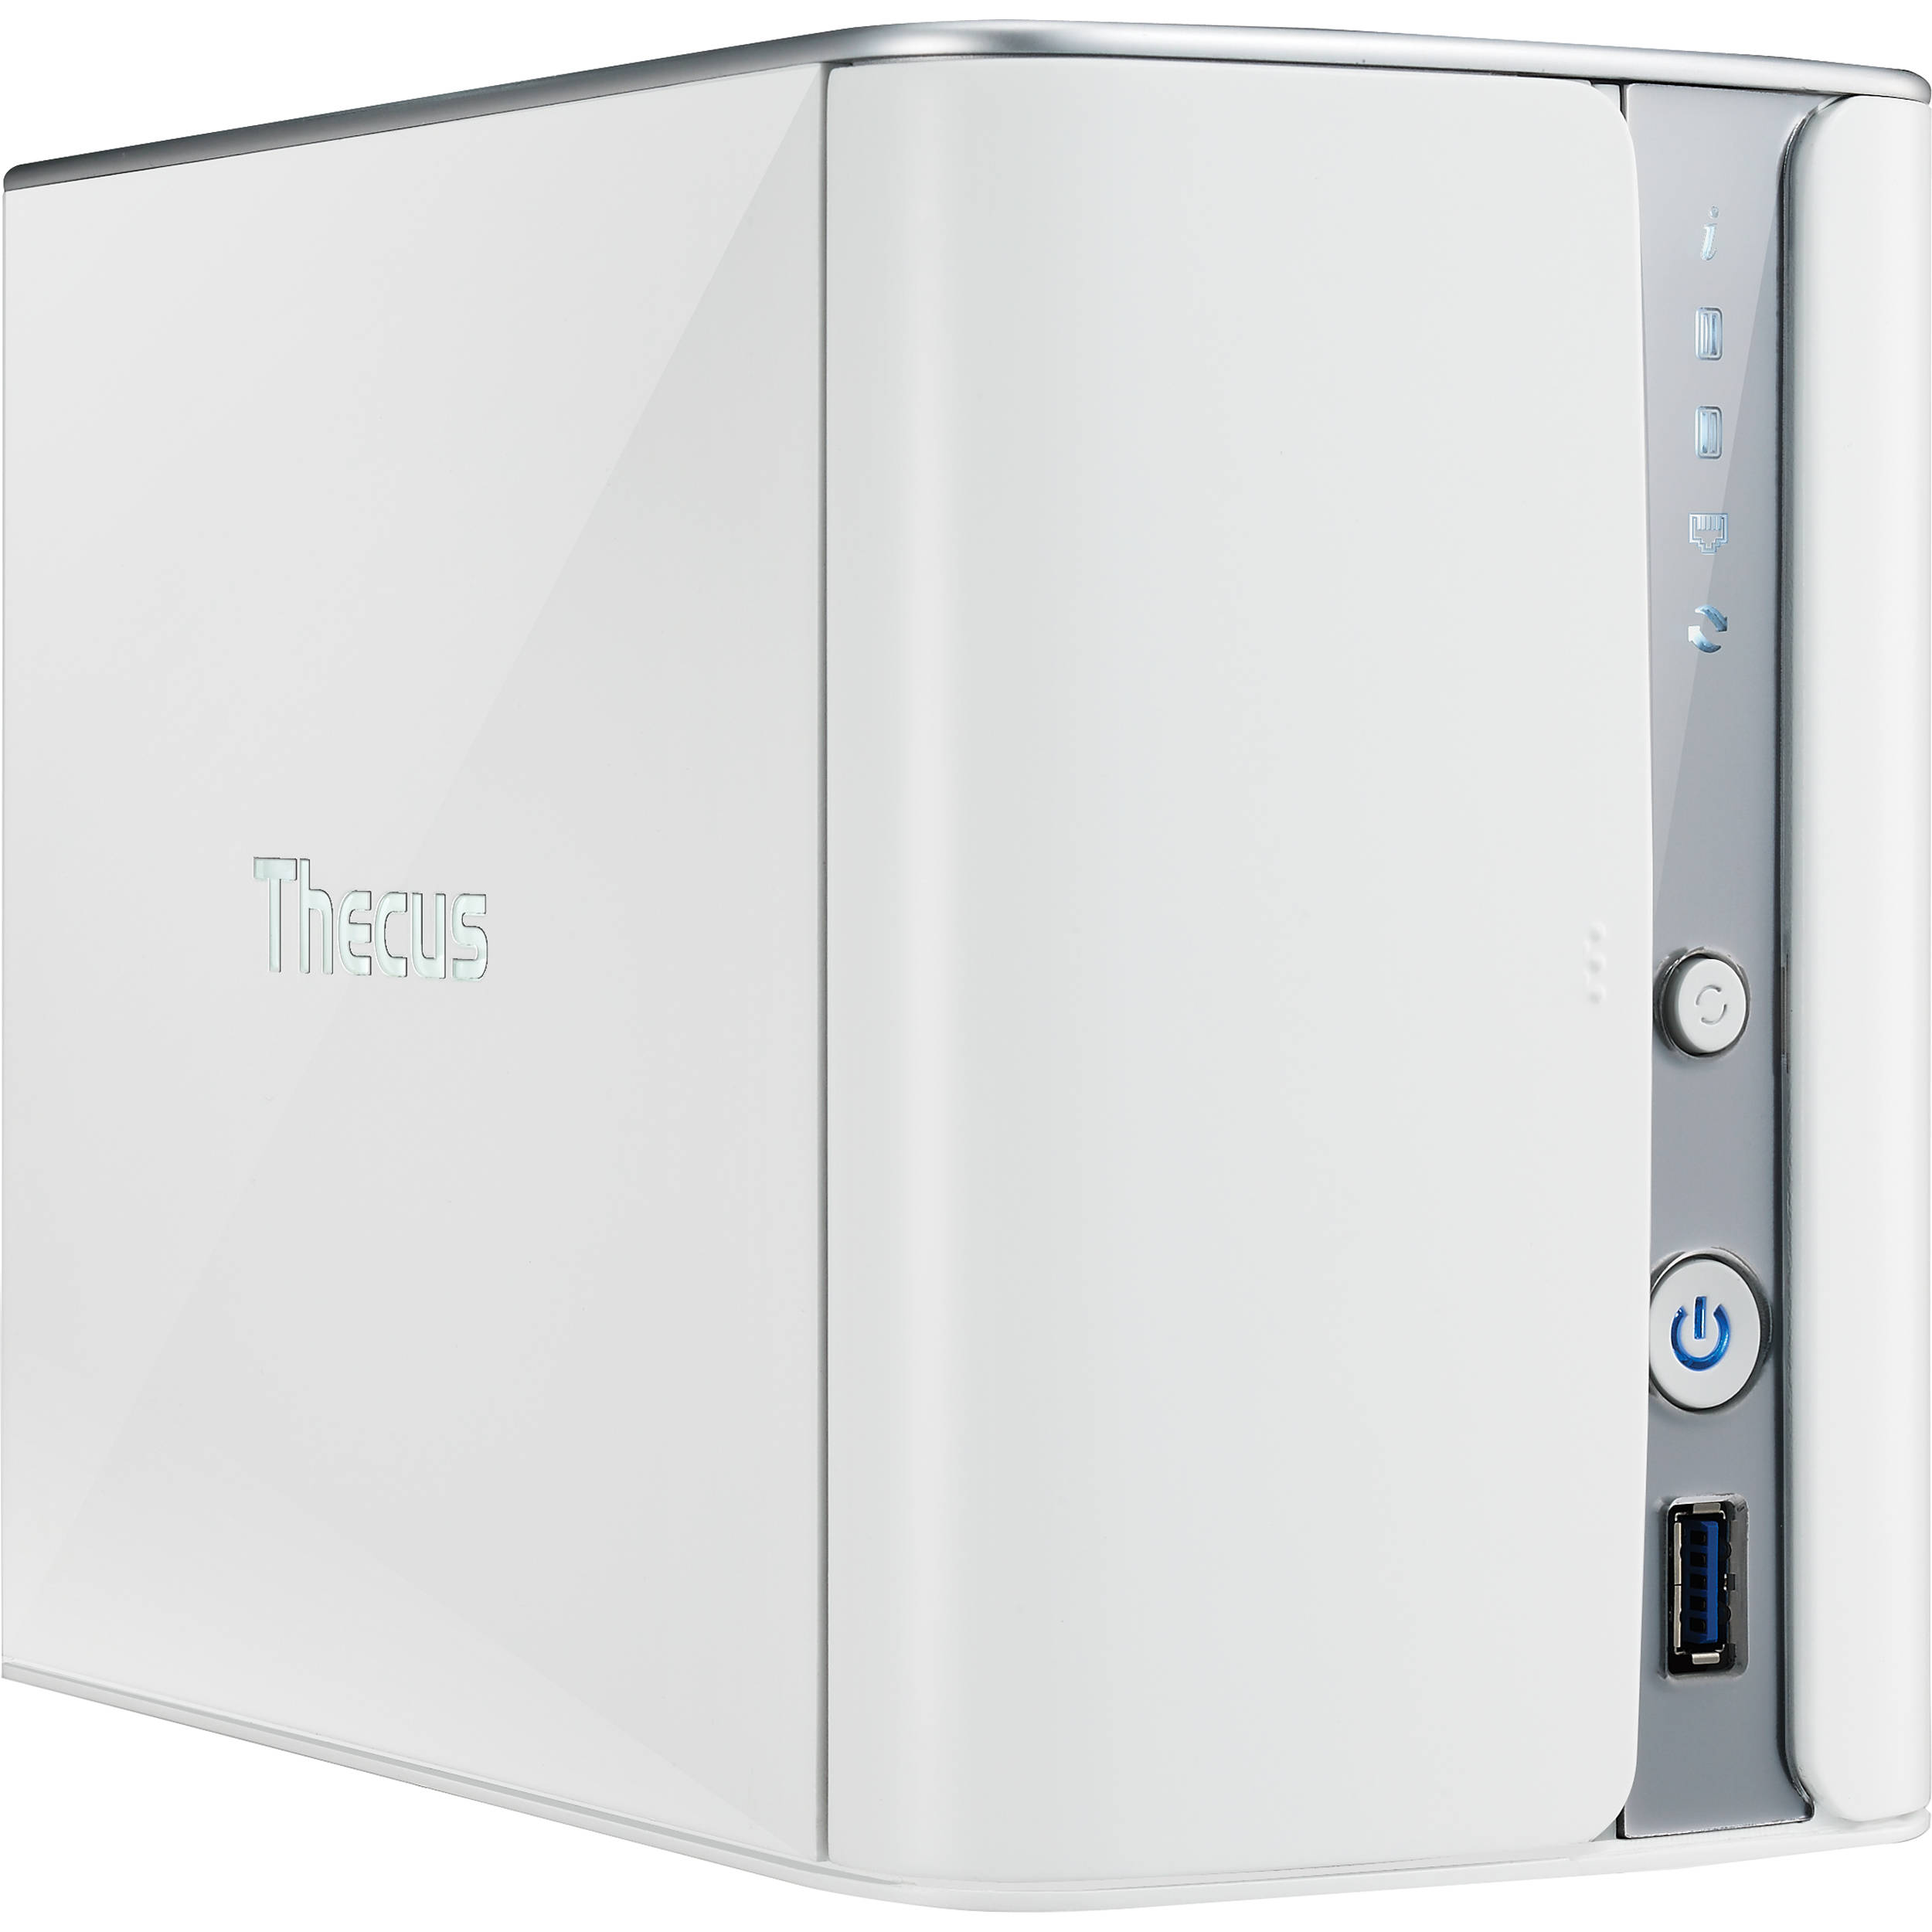 Thecus N2520 NAS Server Driver for Mac Download